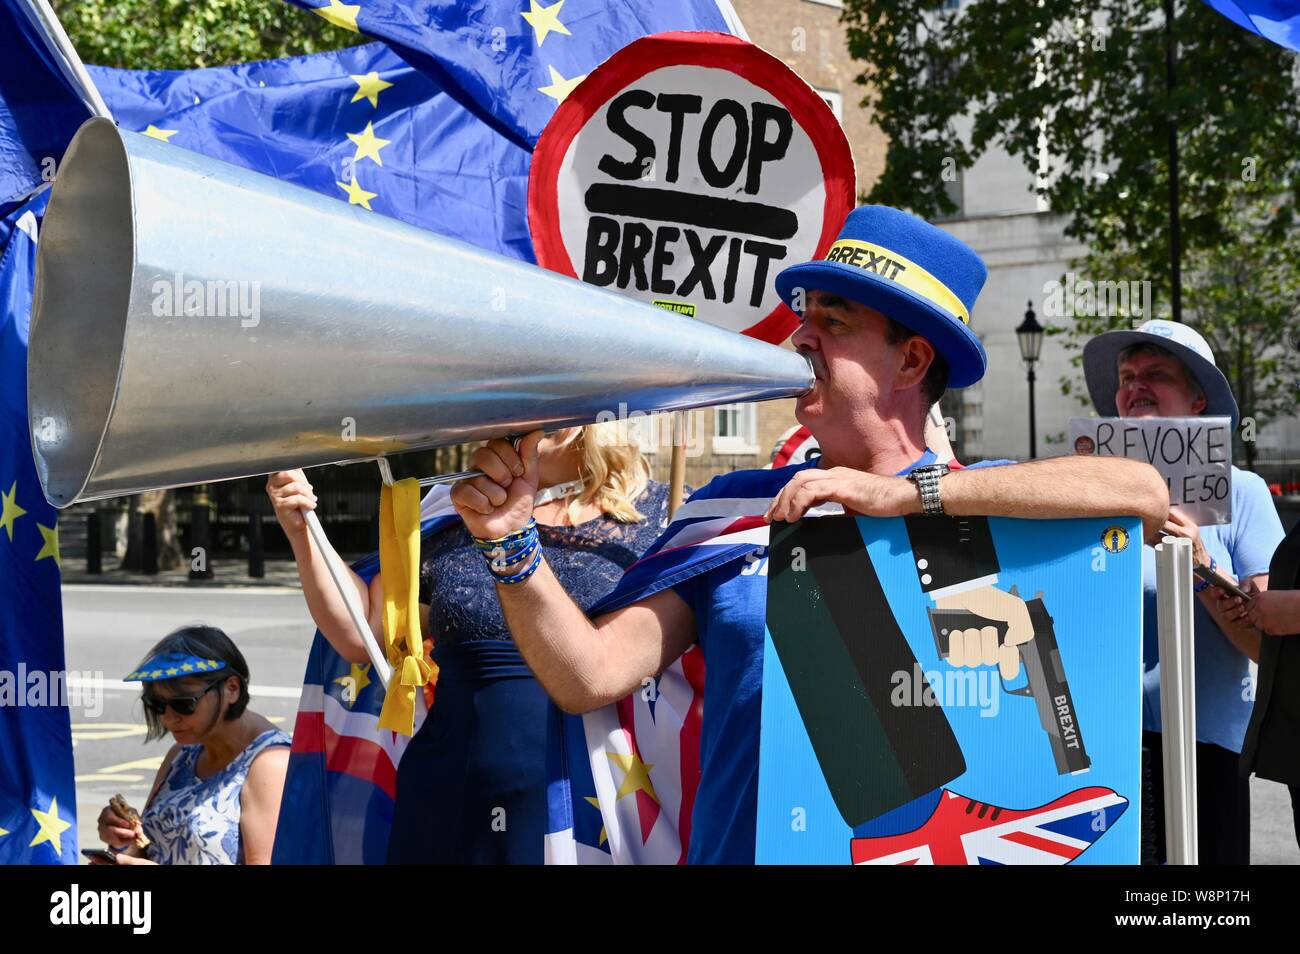 "Steve Bray "" Mr Shouty Man"" used his megaphone to state his opposition to Brexit. SODEM activists protested in favour of the UK remaining in the European Union. The Cabinet Office, Whitehall, London. UK Stock Photo"